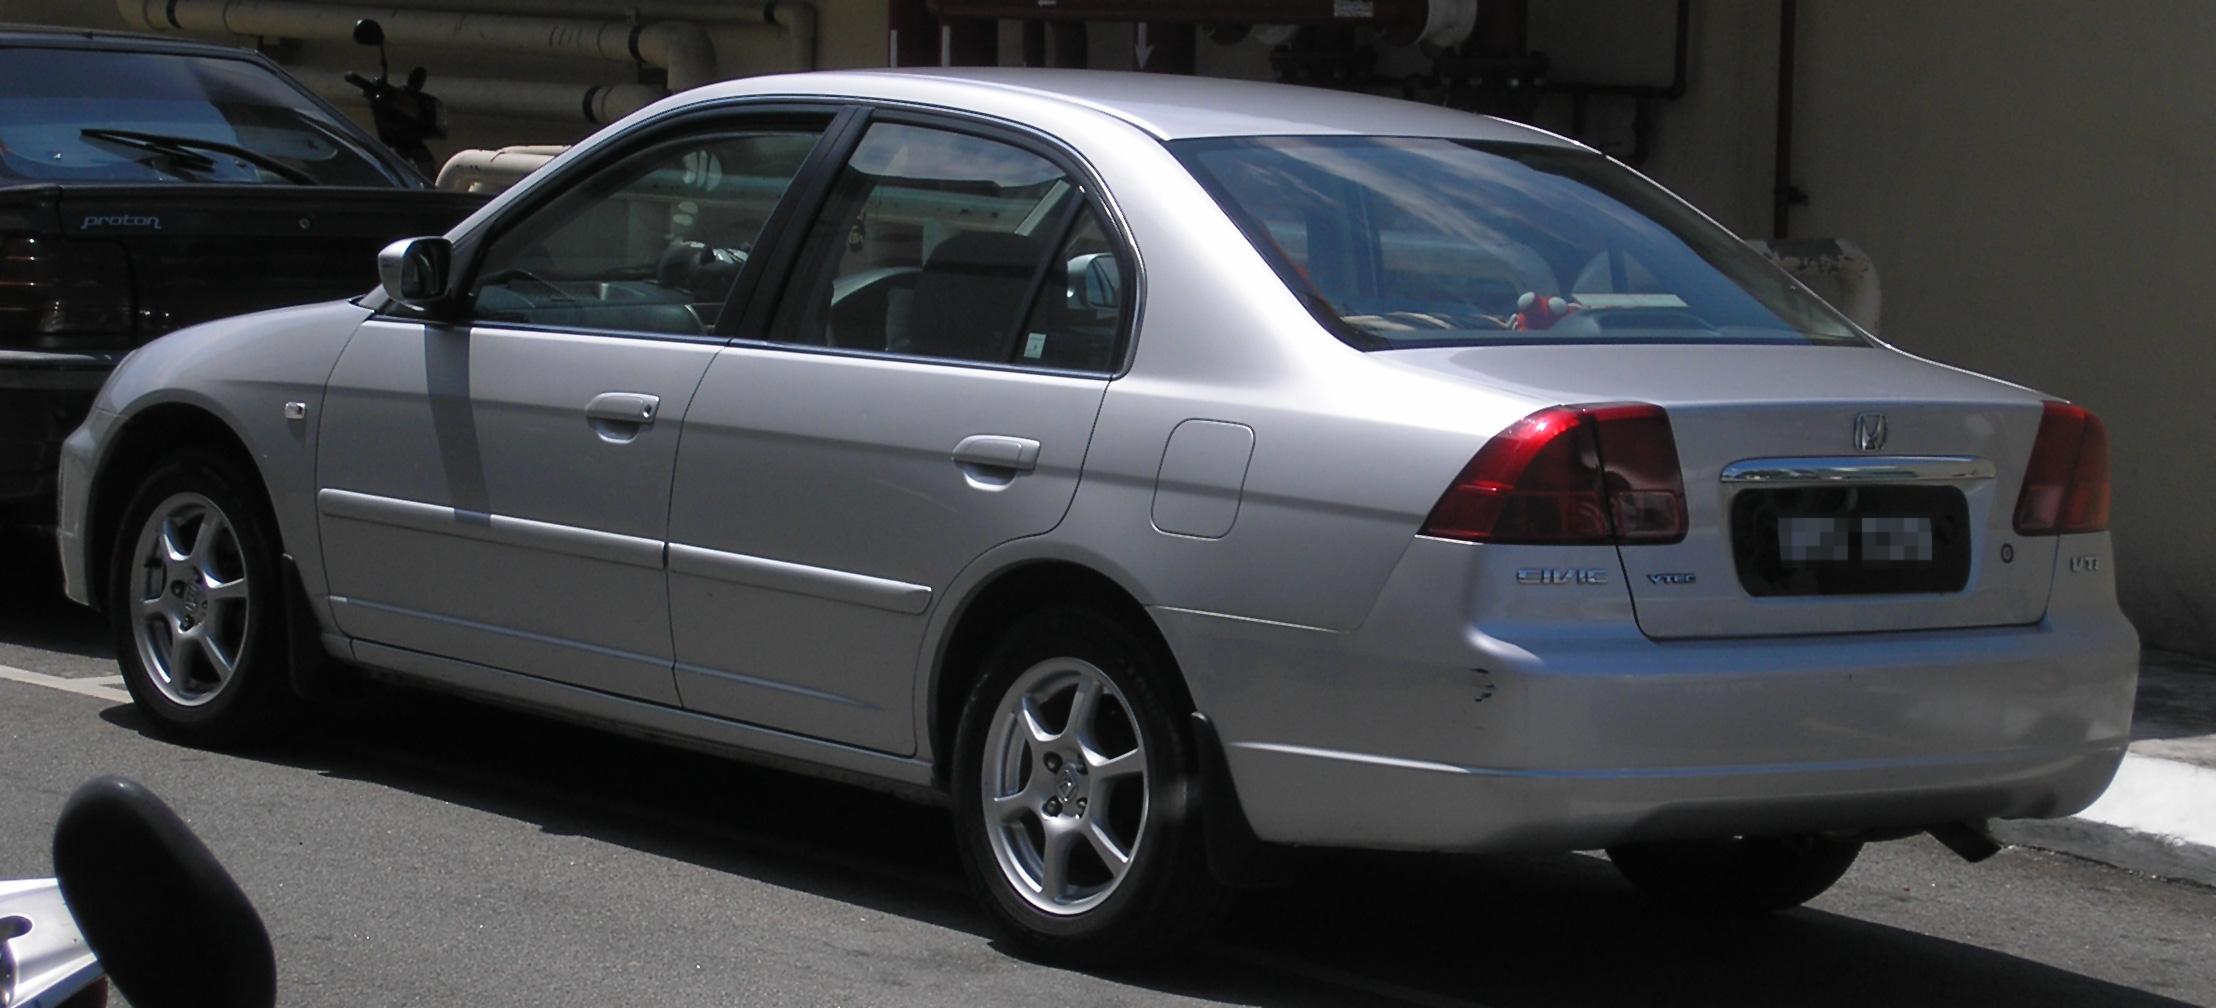 File:Honda Civic (seventh generation) (rear), Serdang.jpg ...